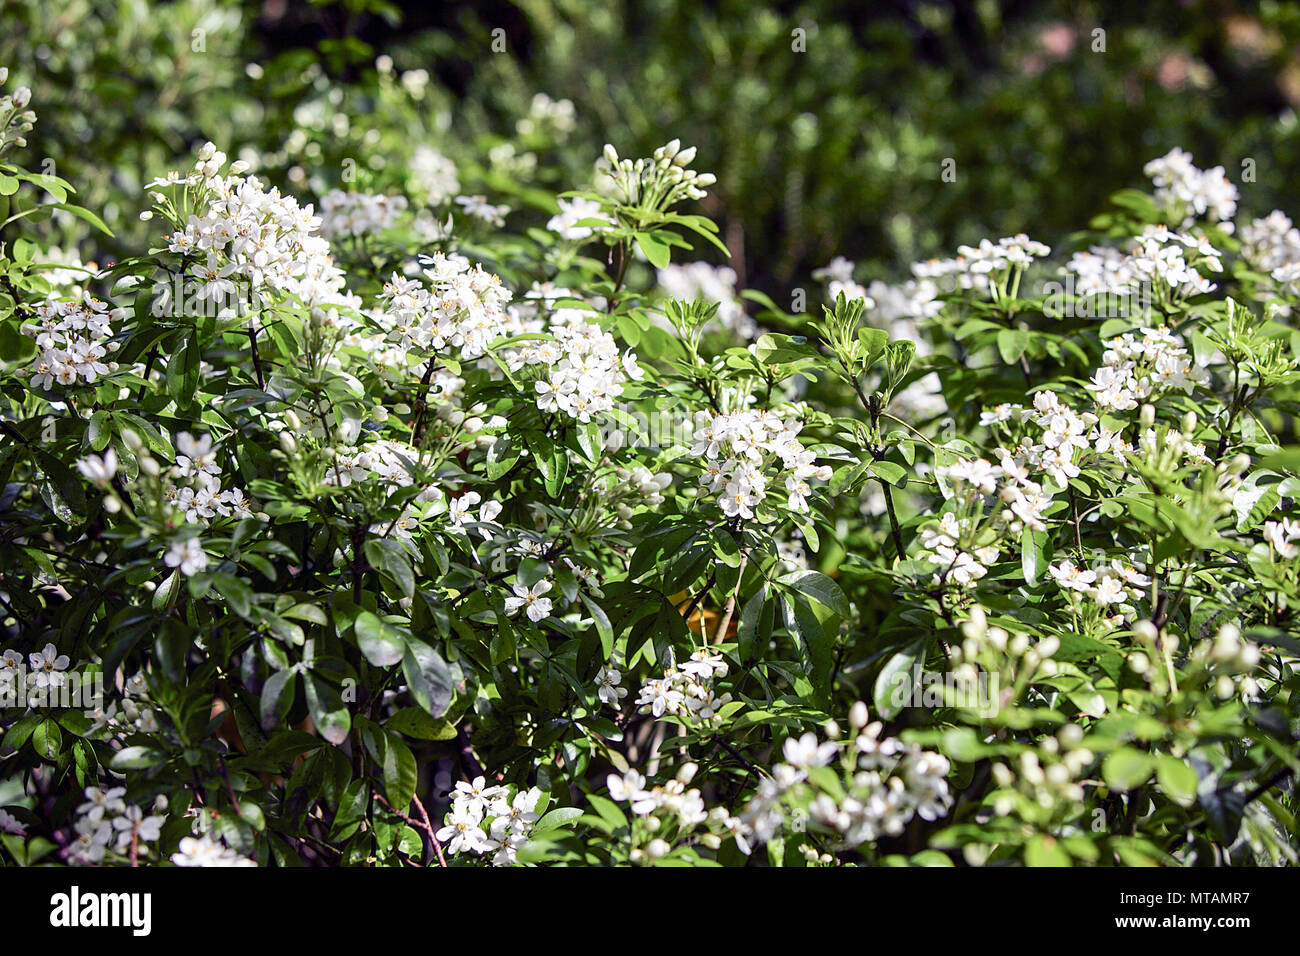 Evergreen Shrub With Spring White Flowers Adorning It Viewed Within